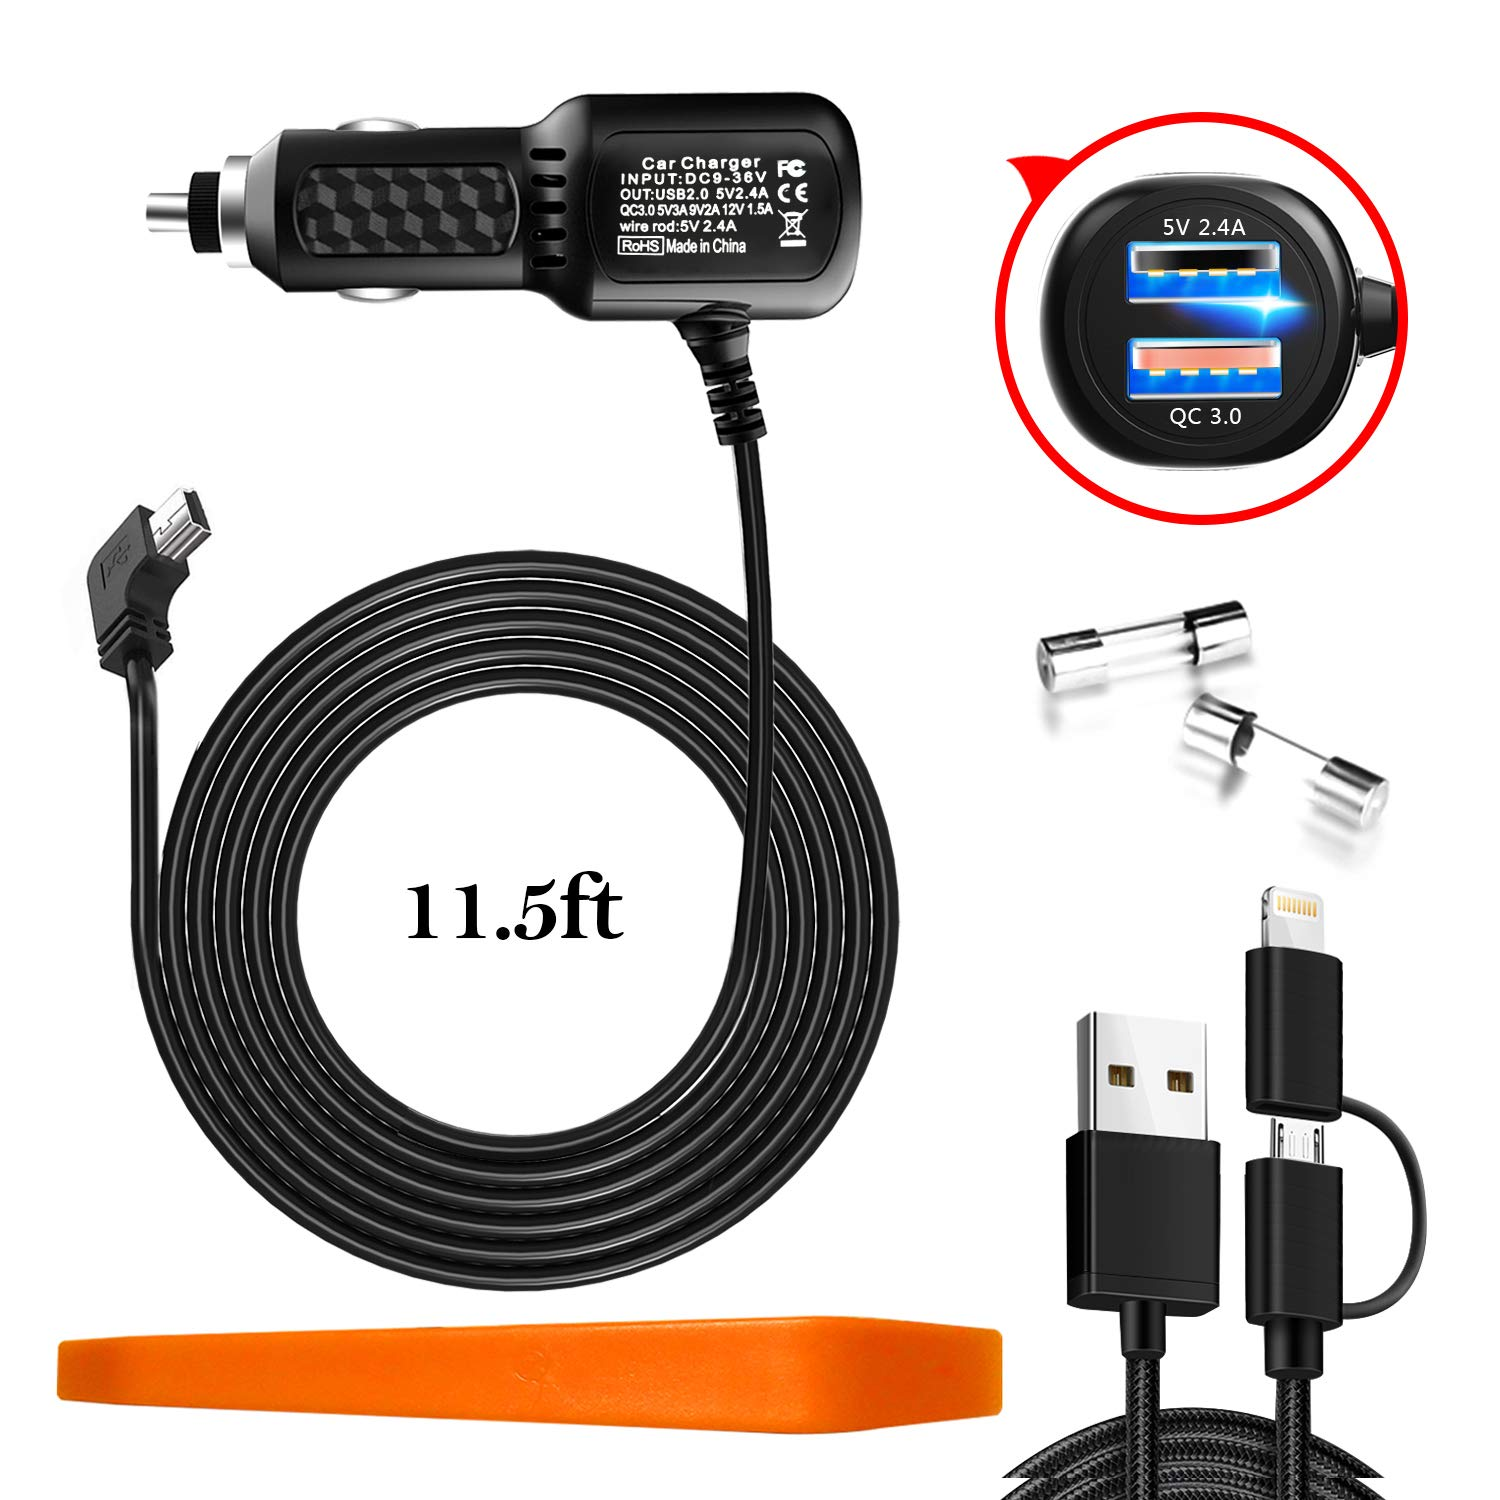 Car Charger for Garmin Nuvi,Garmin car Charger,Garmin GPS Charger Cable,Mini USB Power Cord Cable Dual Port USB Vehicle Power Charging Cable Cord for Garmin Nuvi 200 57LM C255 2539LMT 2597LMT Dashcam